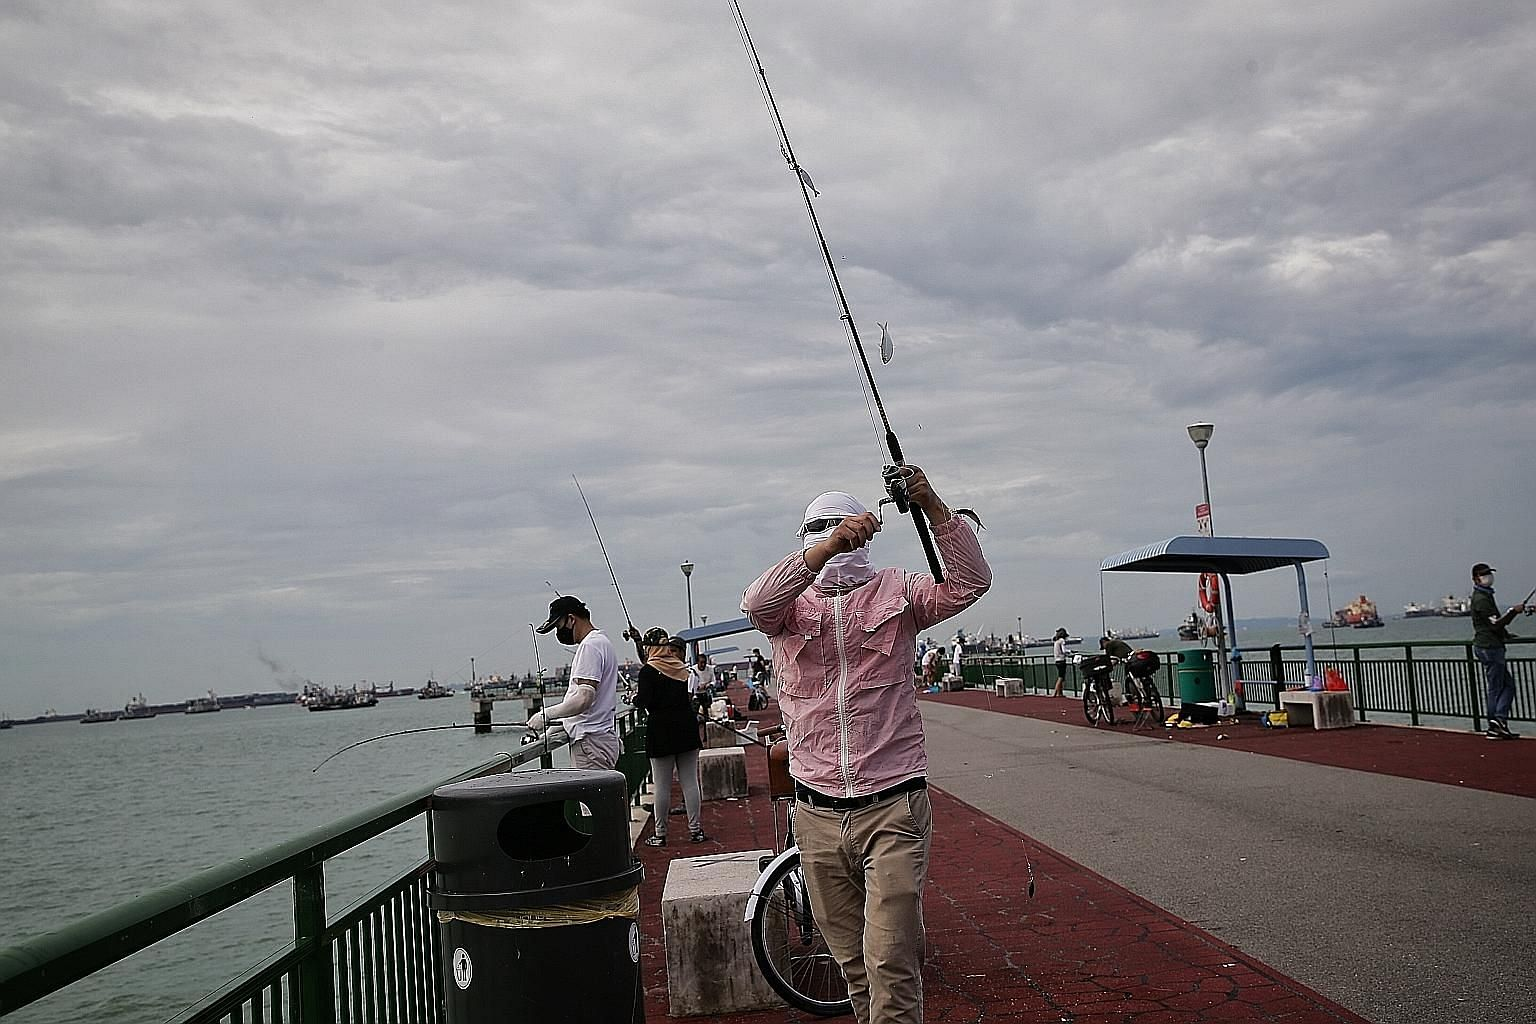 With travel off the cards, anglers in Singapore are casting their lines into the waters more often, raising concerns over the impact on fish stock. Non-profit group Marine Stewards has come up with three sustainability guidelines for fishermen, in co